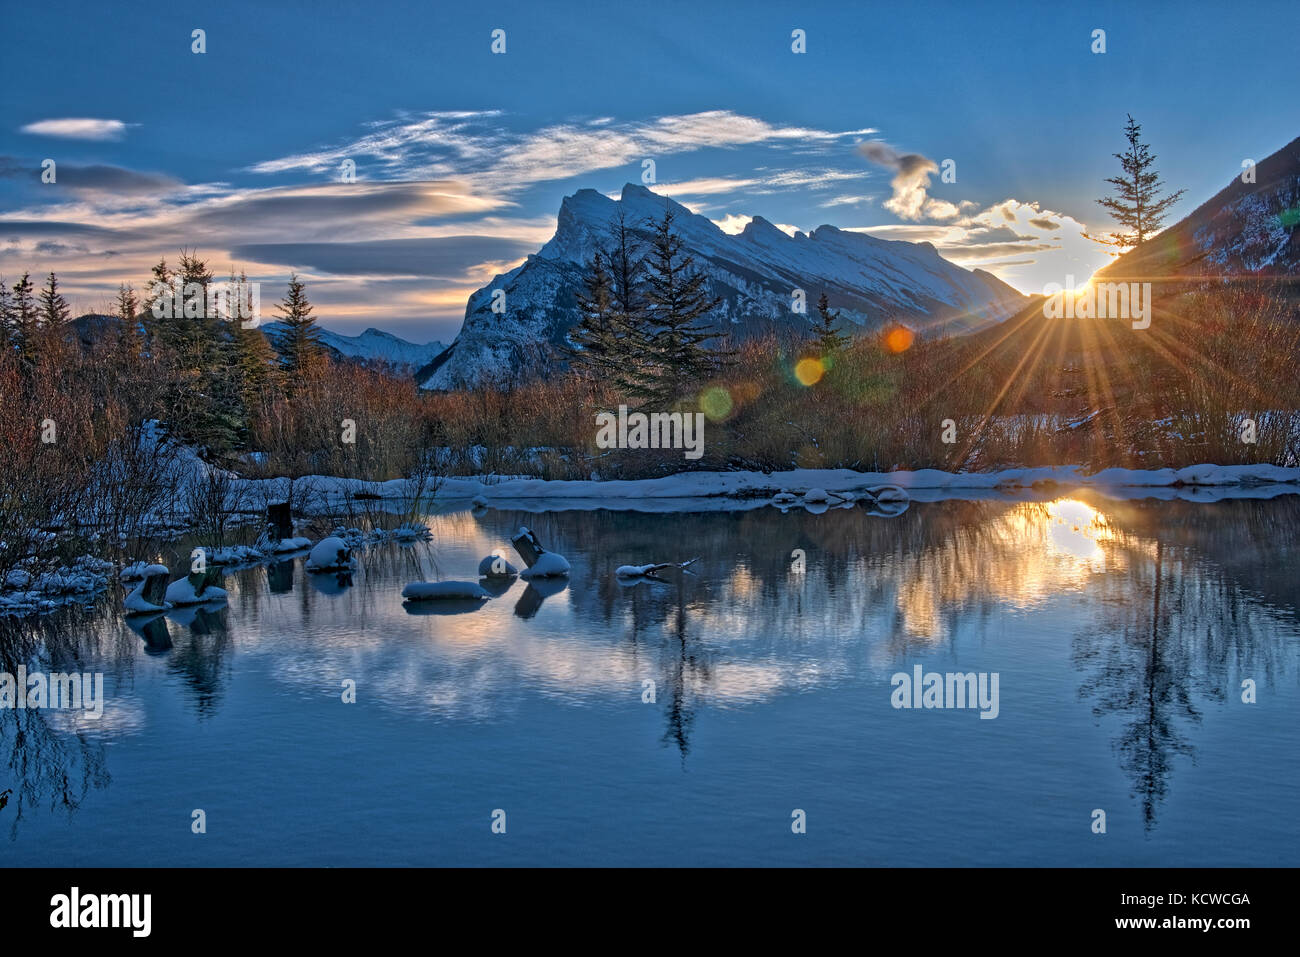 Mount Rundle and the Vermillion Lakes at sunrise, Banff National Park, Alberta, Canada - Stock Image